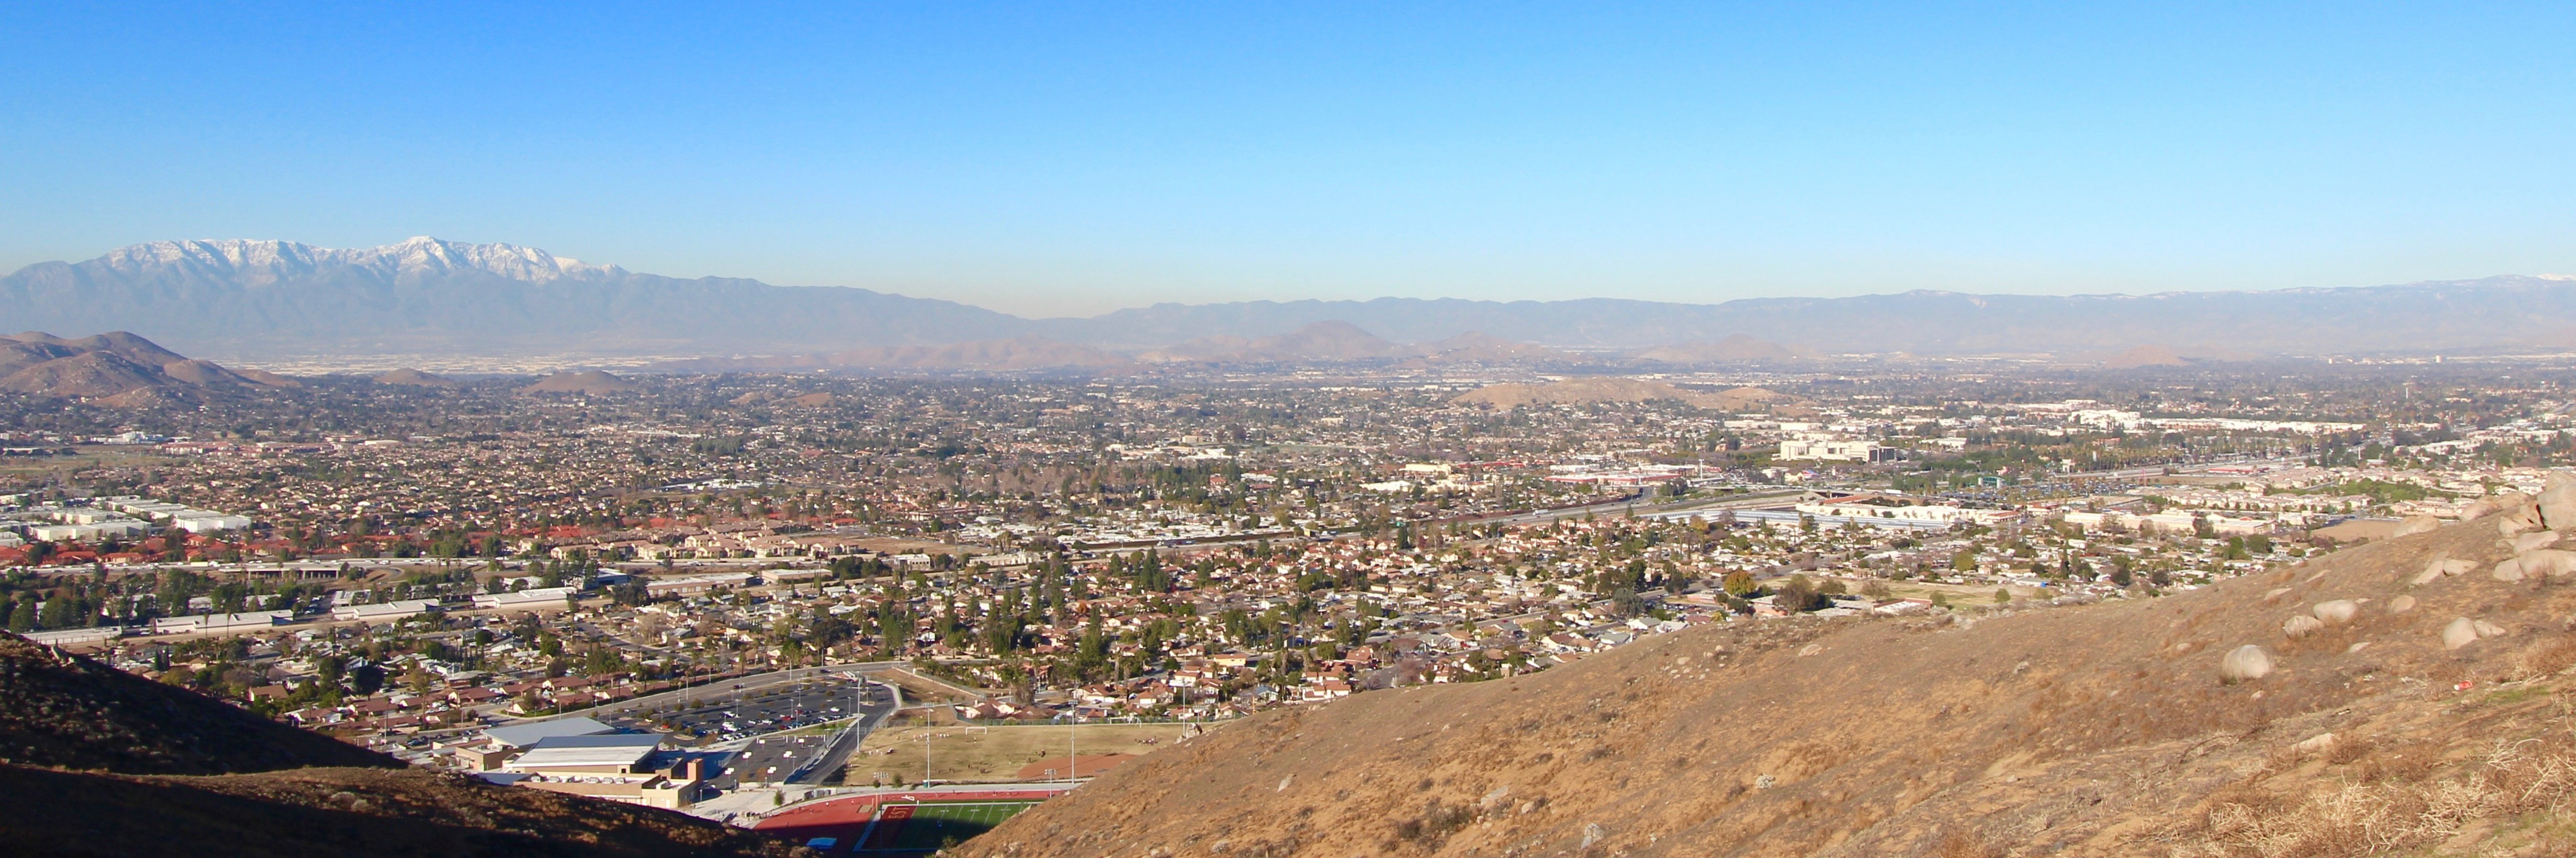 Lake Hills Reserve is a community located in Riverside California